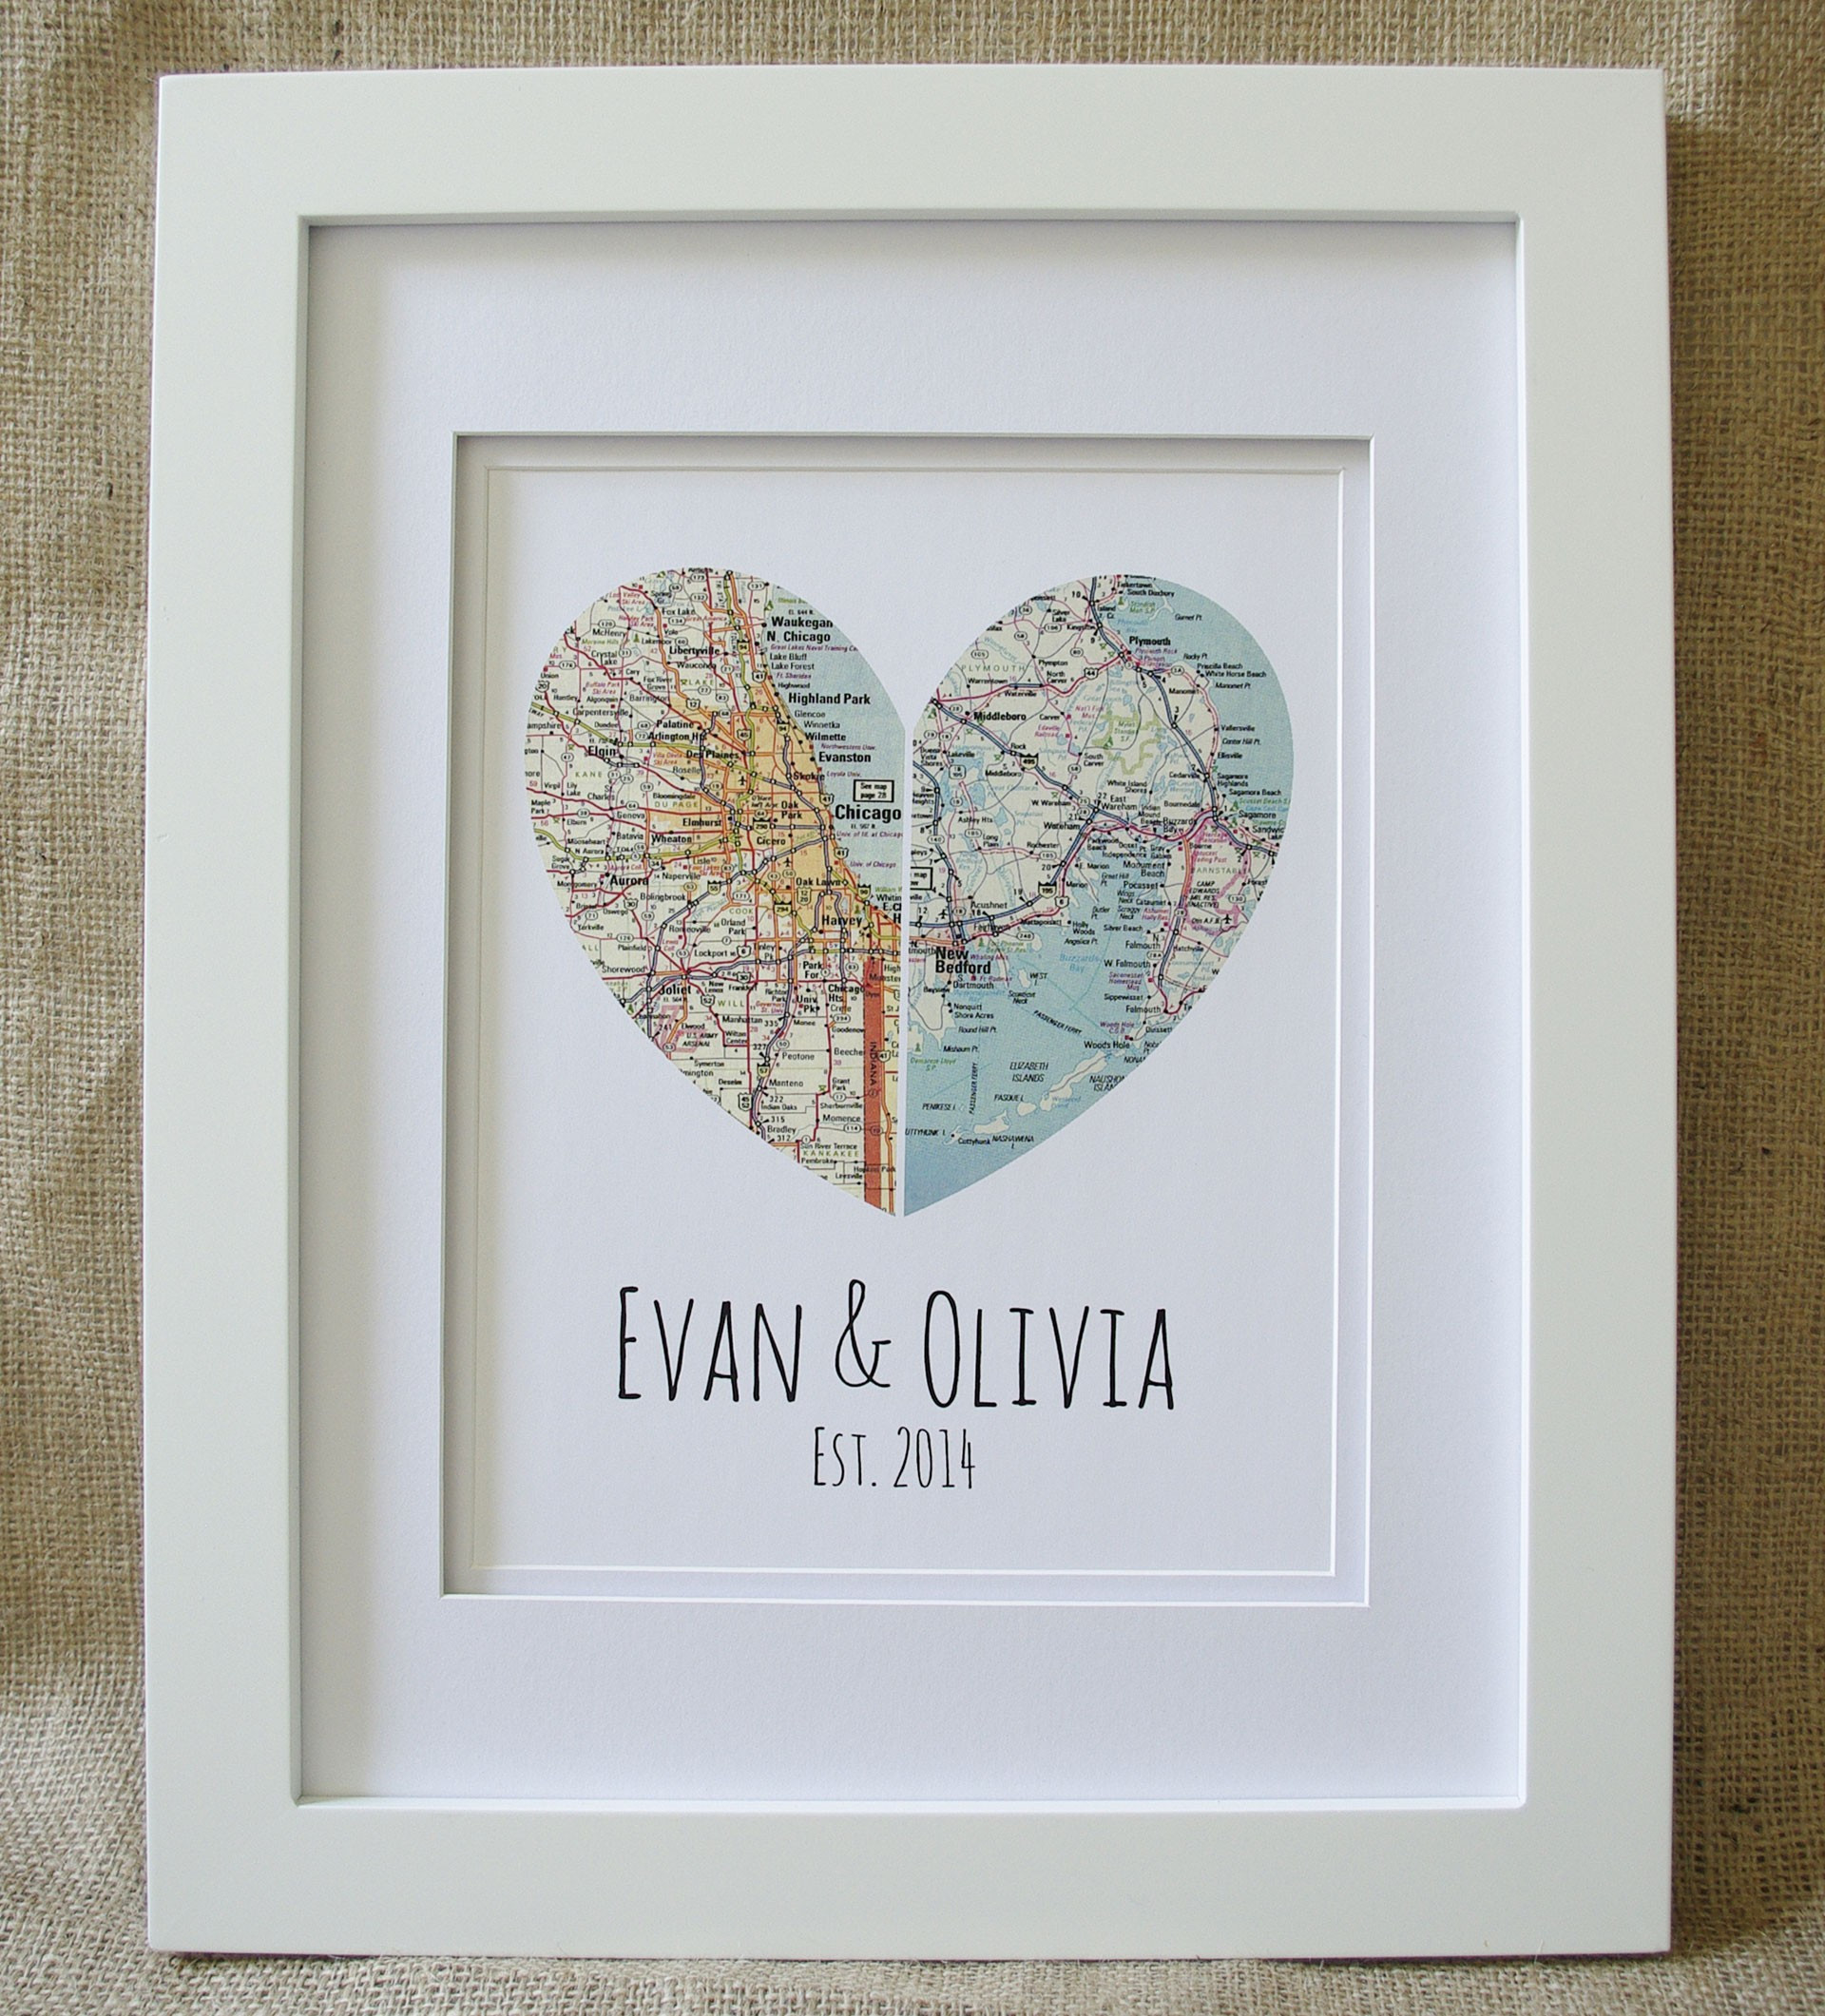 Best ideas about Wedding Gift Ideas For Couple Already Living Together . Save or Pin 20 Unique Wedding Gift Ideas for Couple Already Living Now.